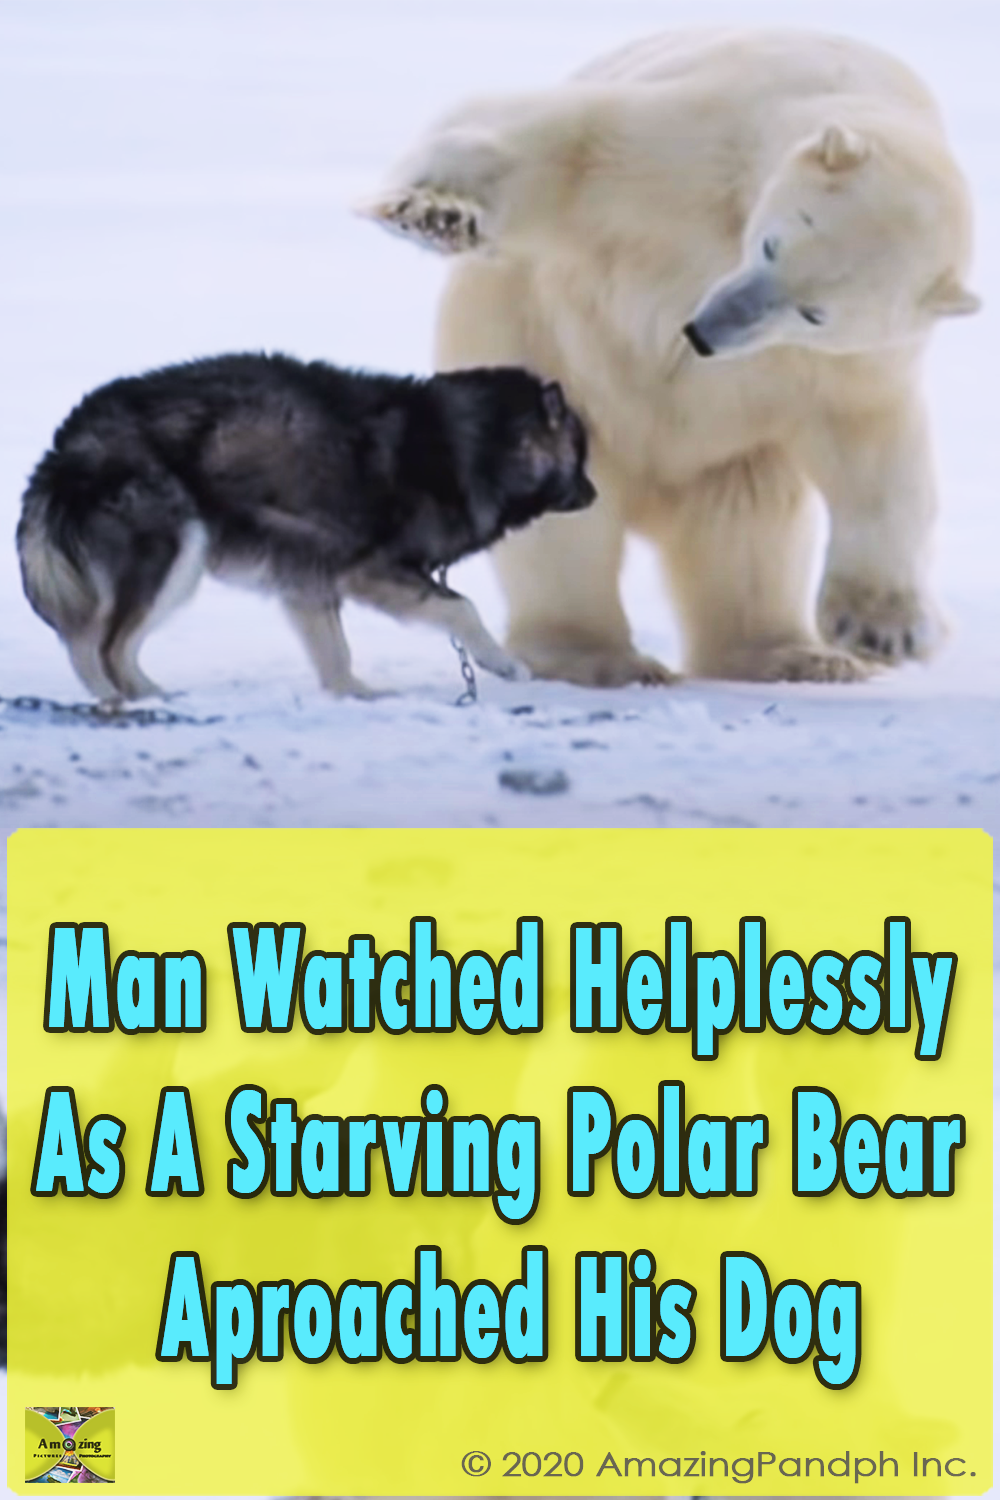 bear, dog, forms unlikely friendship, friends, Husky, Husky dog, Polar, polar animals, Polar bear, unlikely, video, with a husky